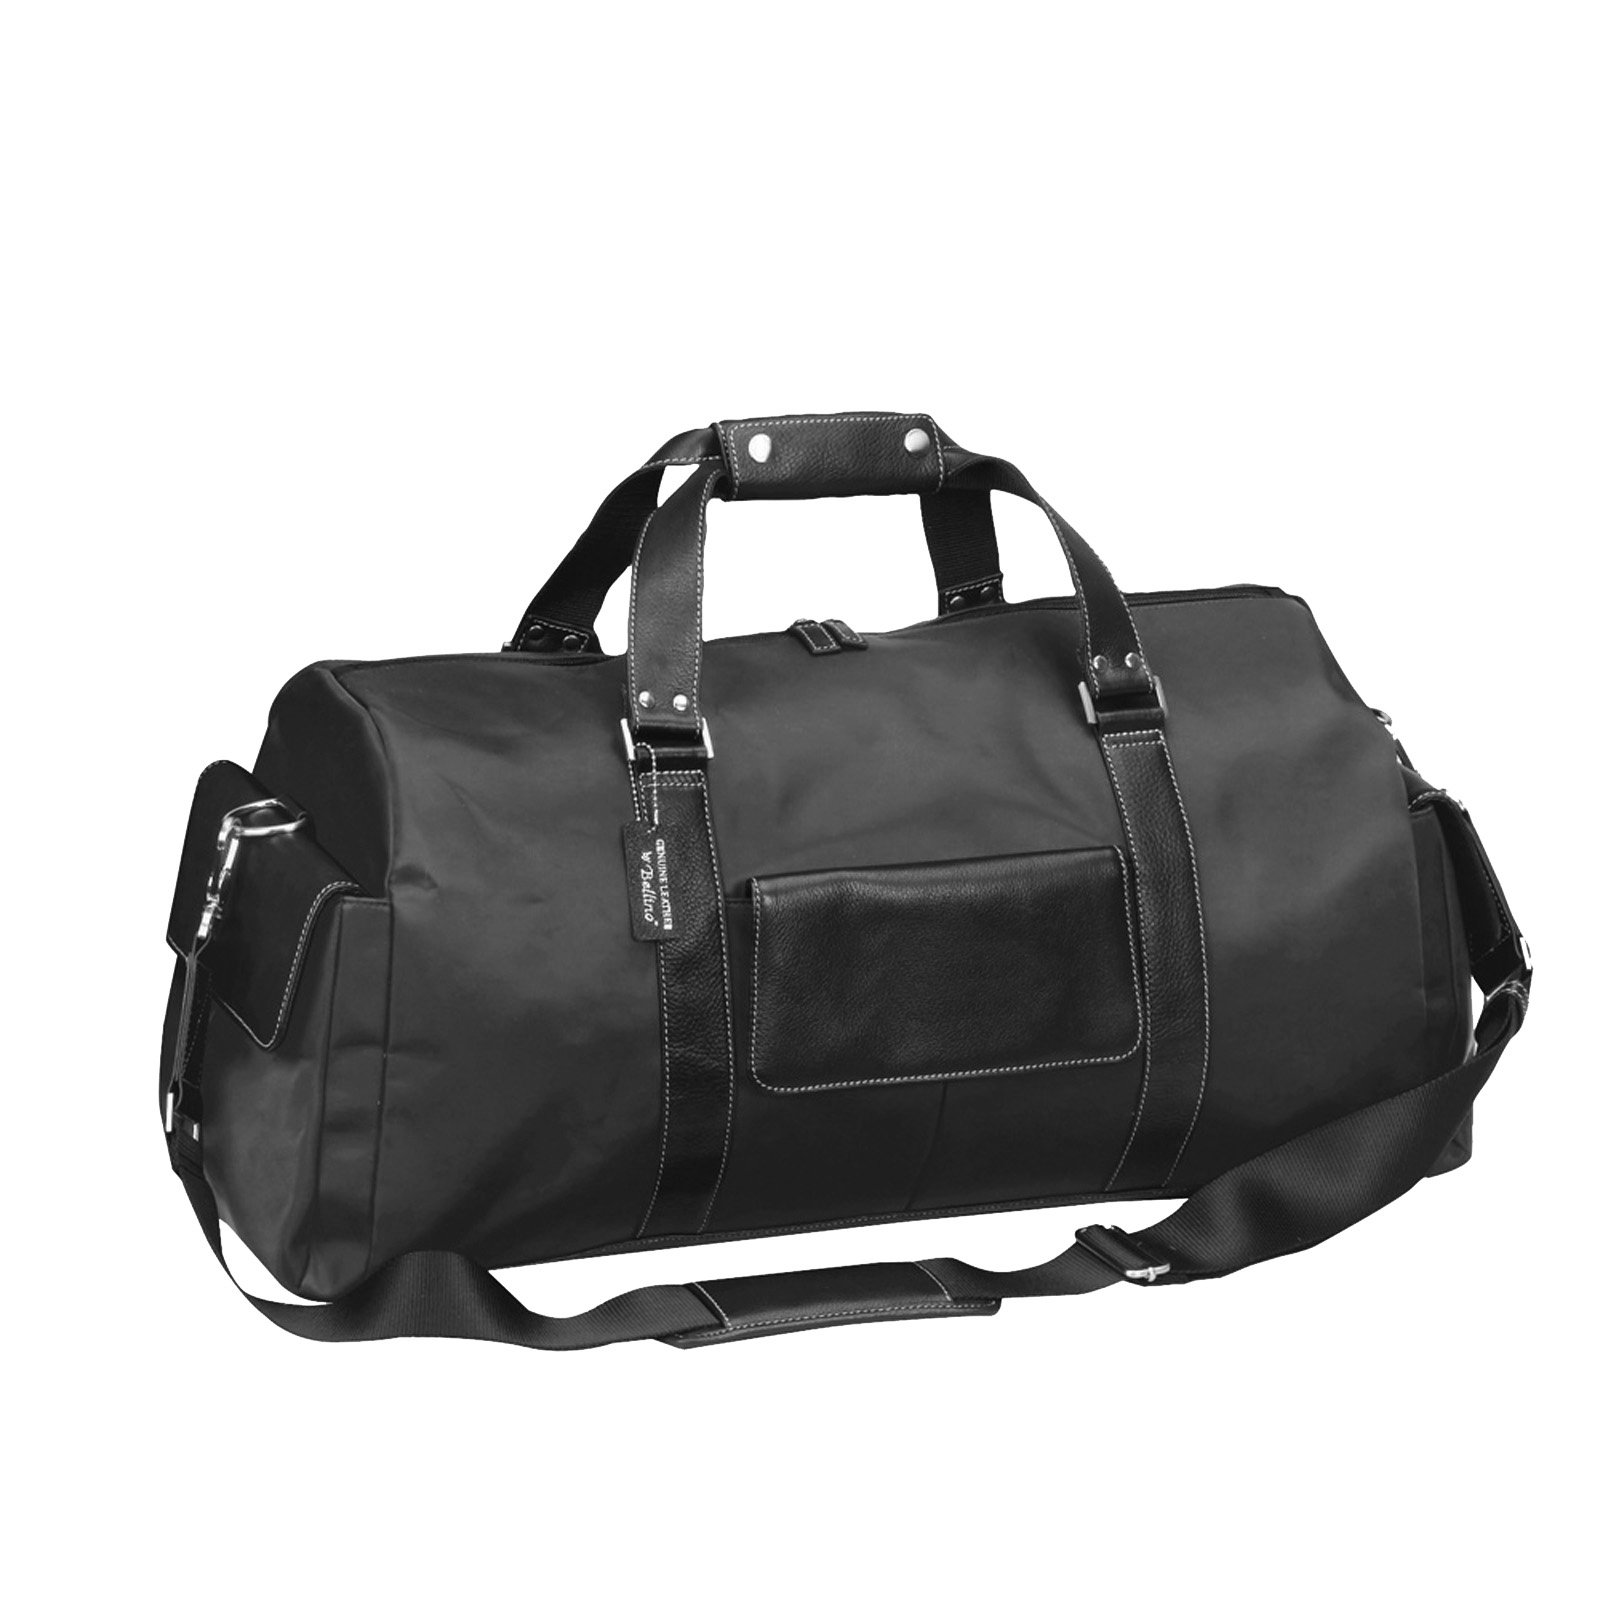 Bellino The Italian Carry On Duffel Bag